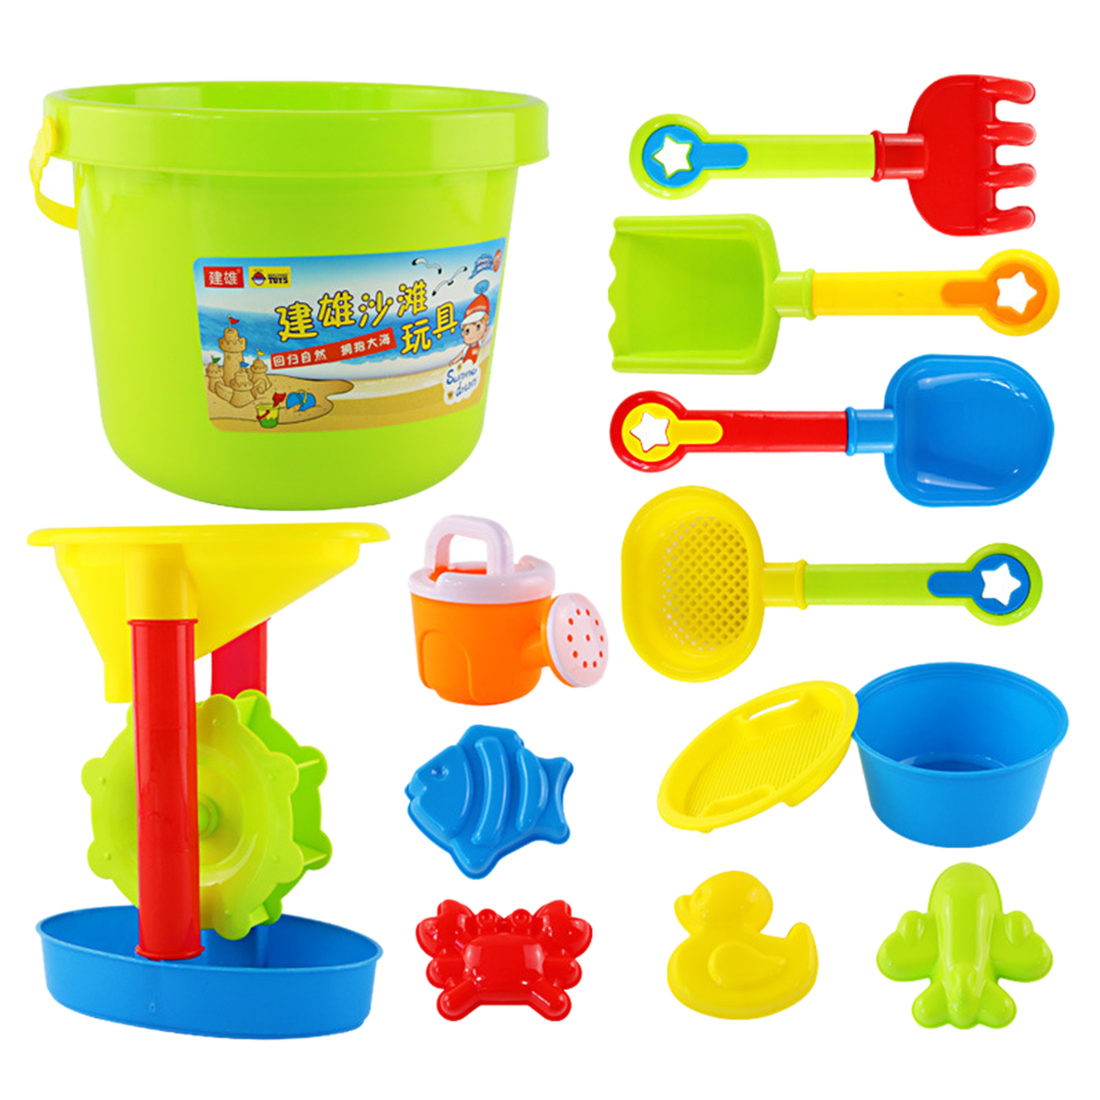 10Pcs Children Safety Plastic Outdoor Beach Sand Toy Set With Trolley Mold Tools Kettle For Children Playing Outdoor Fun